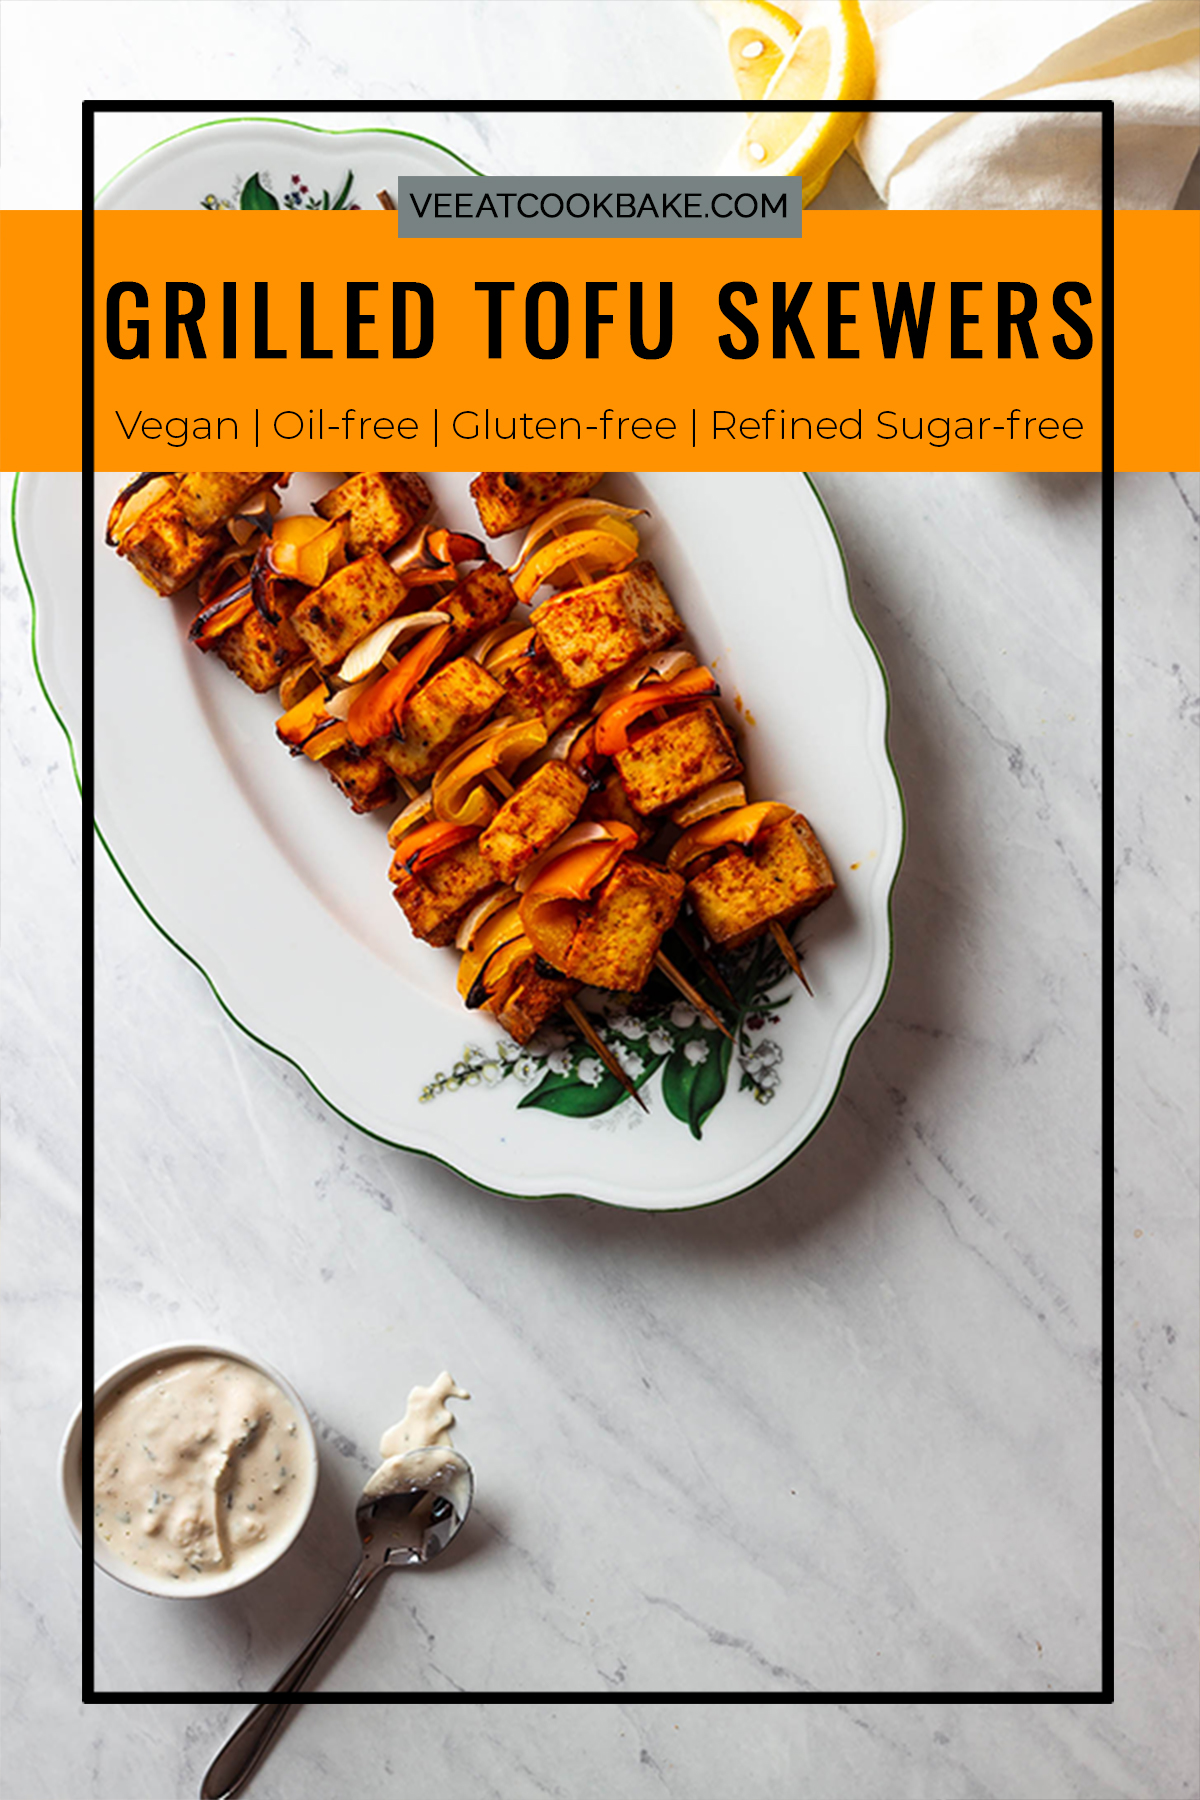 Paprika Flavored Grilled Tofu – Simple grilled tofu skewers! Made with a tangy oil-free tomato paprika marinade. A perfect vegan barbecue recipe #vegetarian #vegan #barbecue #grilled #tofu #kabobs #vegangrilledskewers #wfpb #oilfreevegan